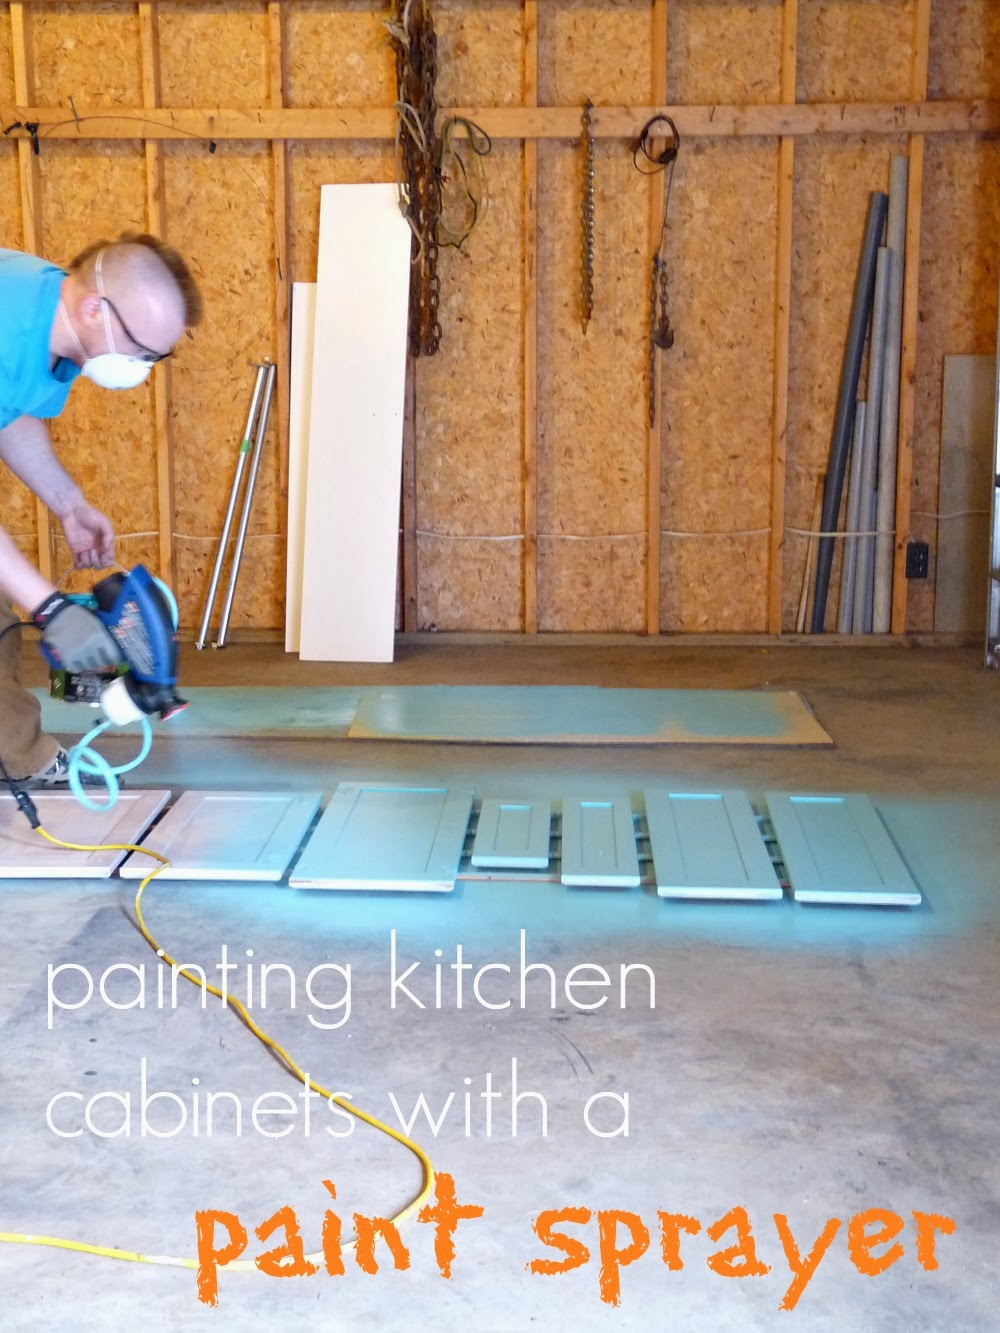 How to paint kitchen cabinet doors with a paint sprayer